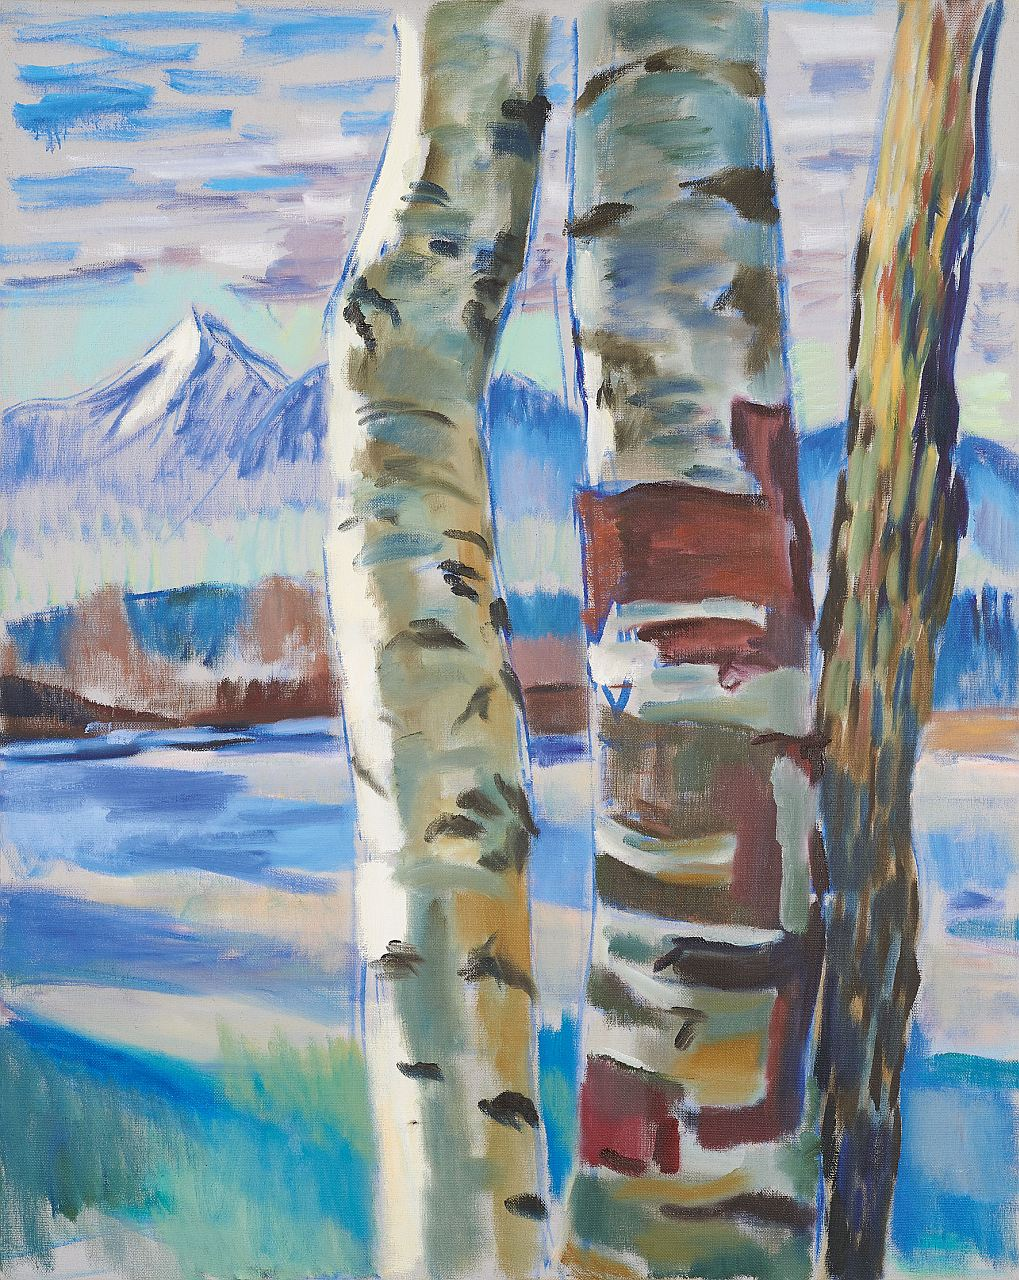 Harald Scheicher, Trees and Obir, 2020, oil on canvas, 100x80cm, signed on the back and dated smaller